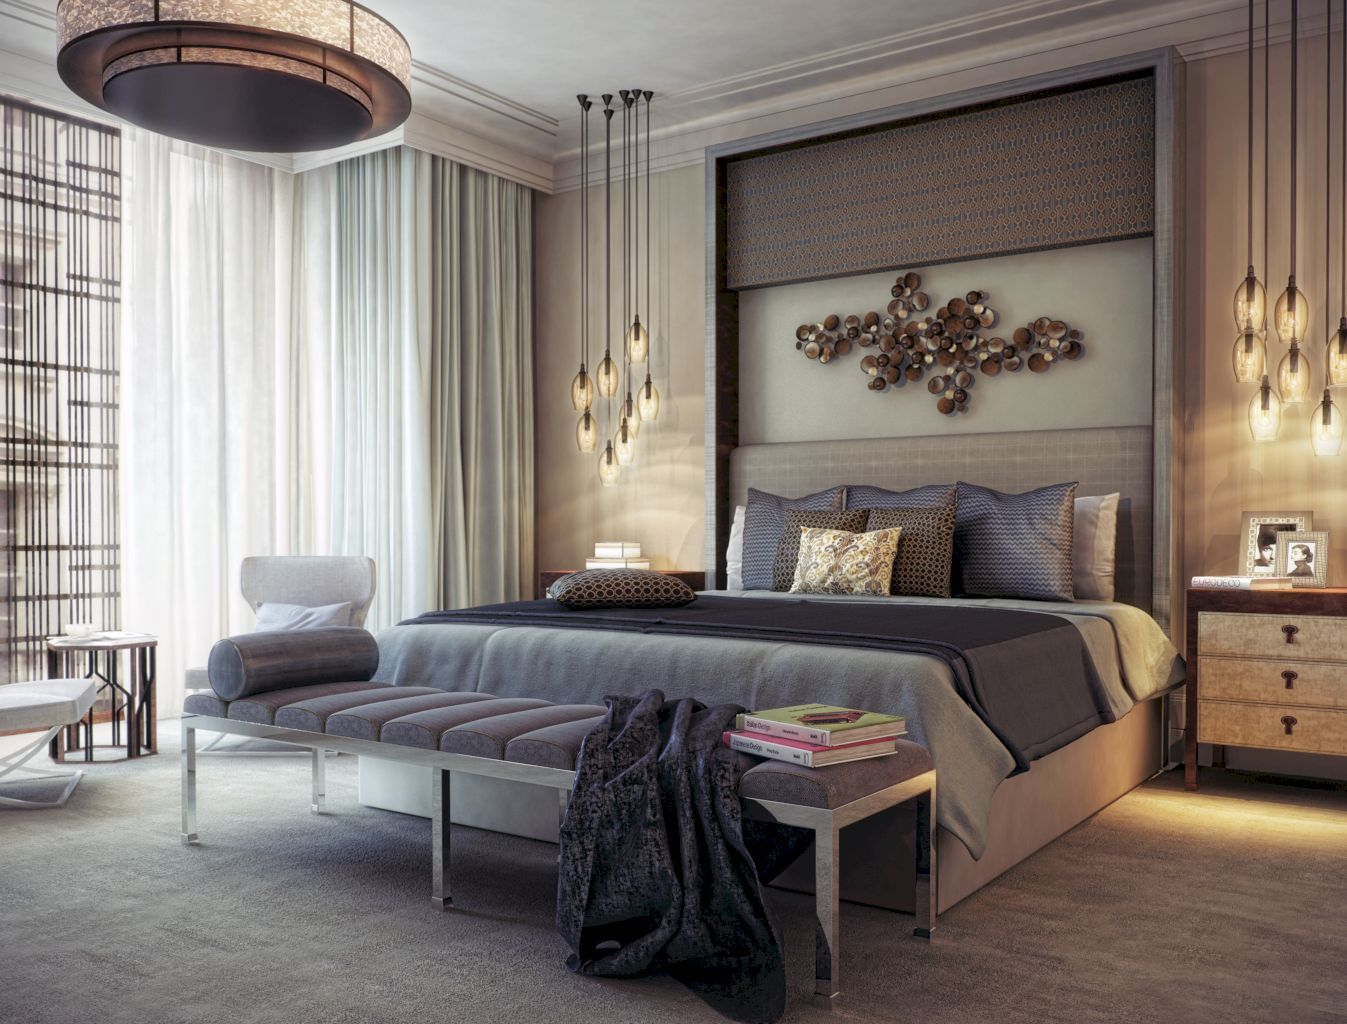 40 Super Elegant And Comfy Luxury Bedroom Ideas  Luxury Bedrooms Glamorous Luxury Bedroom Designs Decorating Inspiration